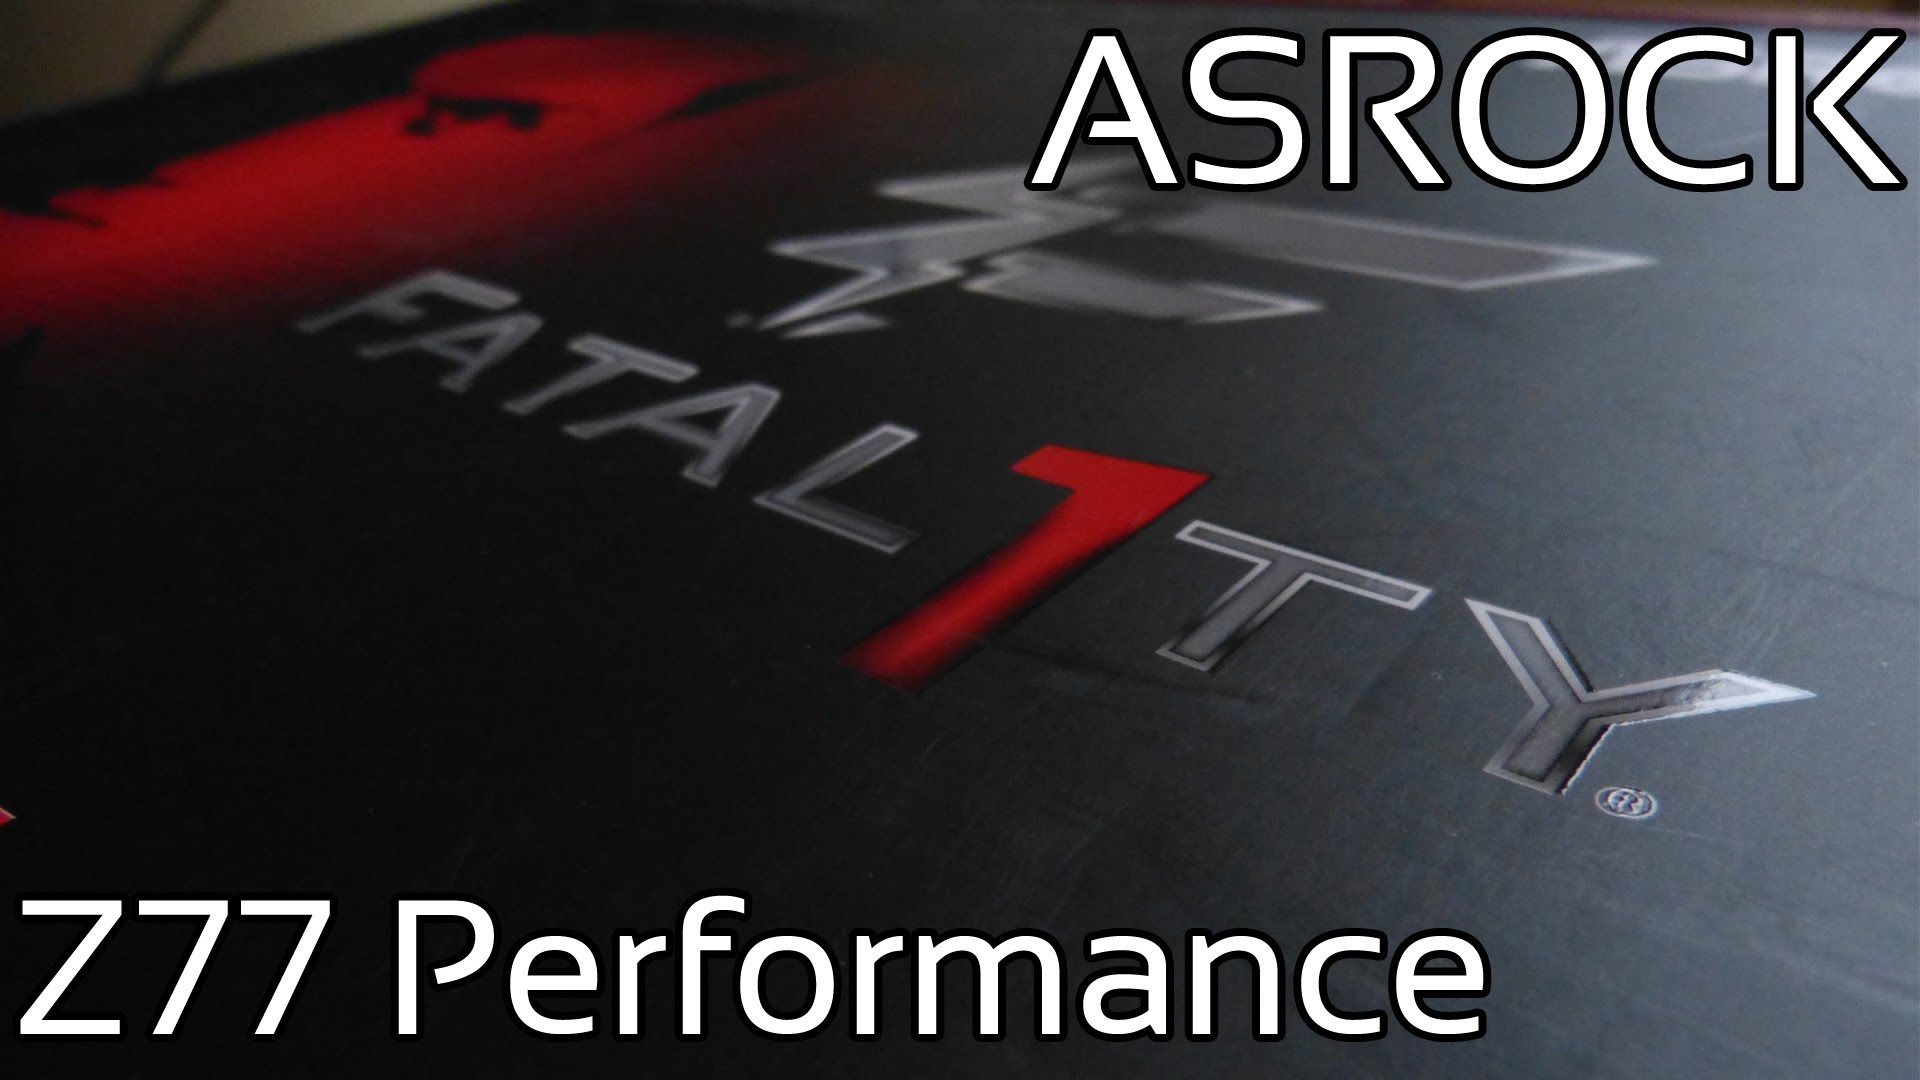 Asrock Wallpaper 188 images in Collection Page 6 1920x1080